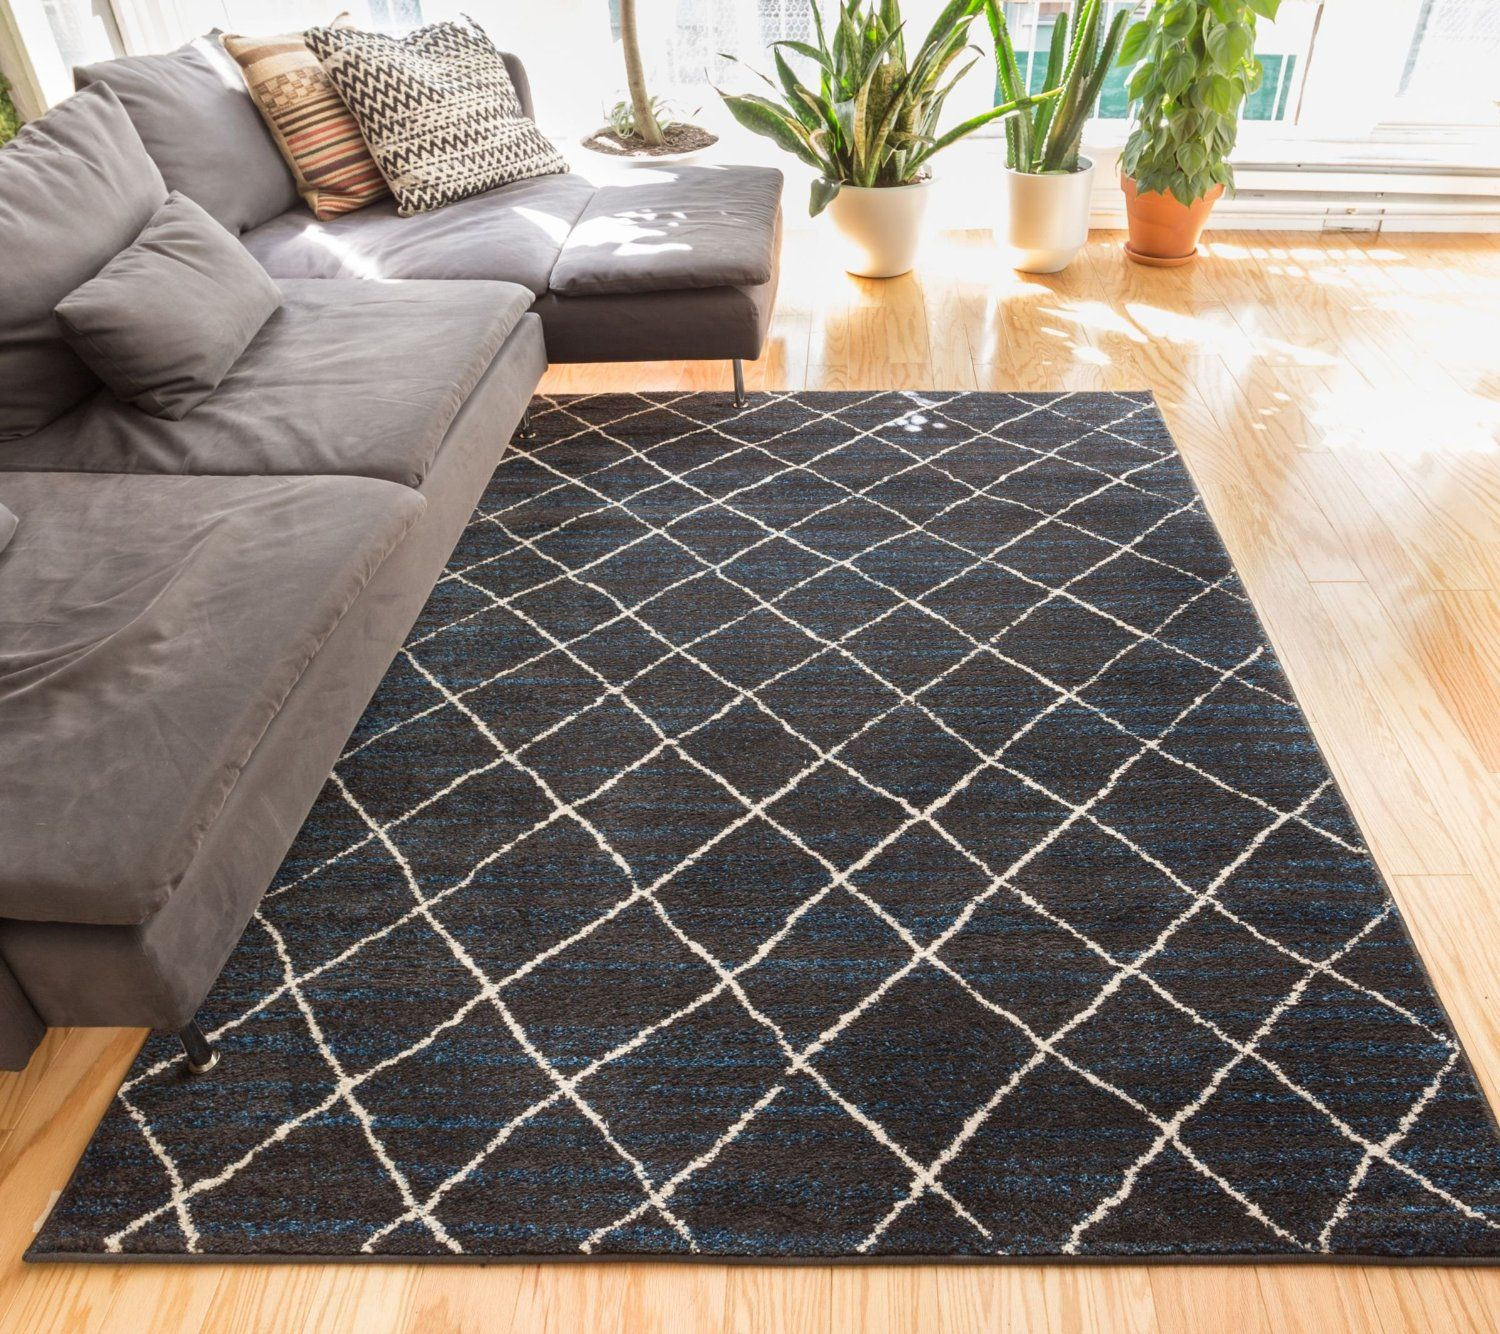 Cheshire Brown Moroccan Lattice Vintage Modern Casual Traditional